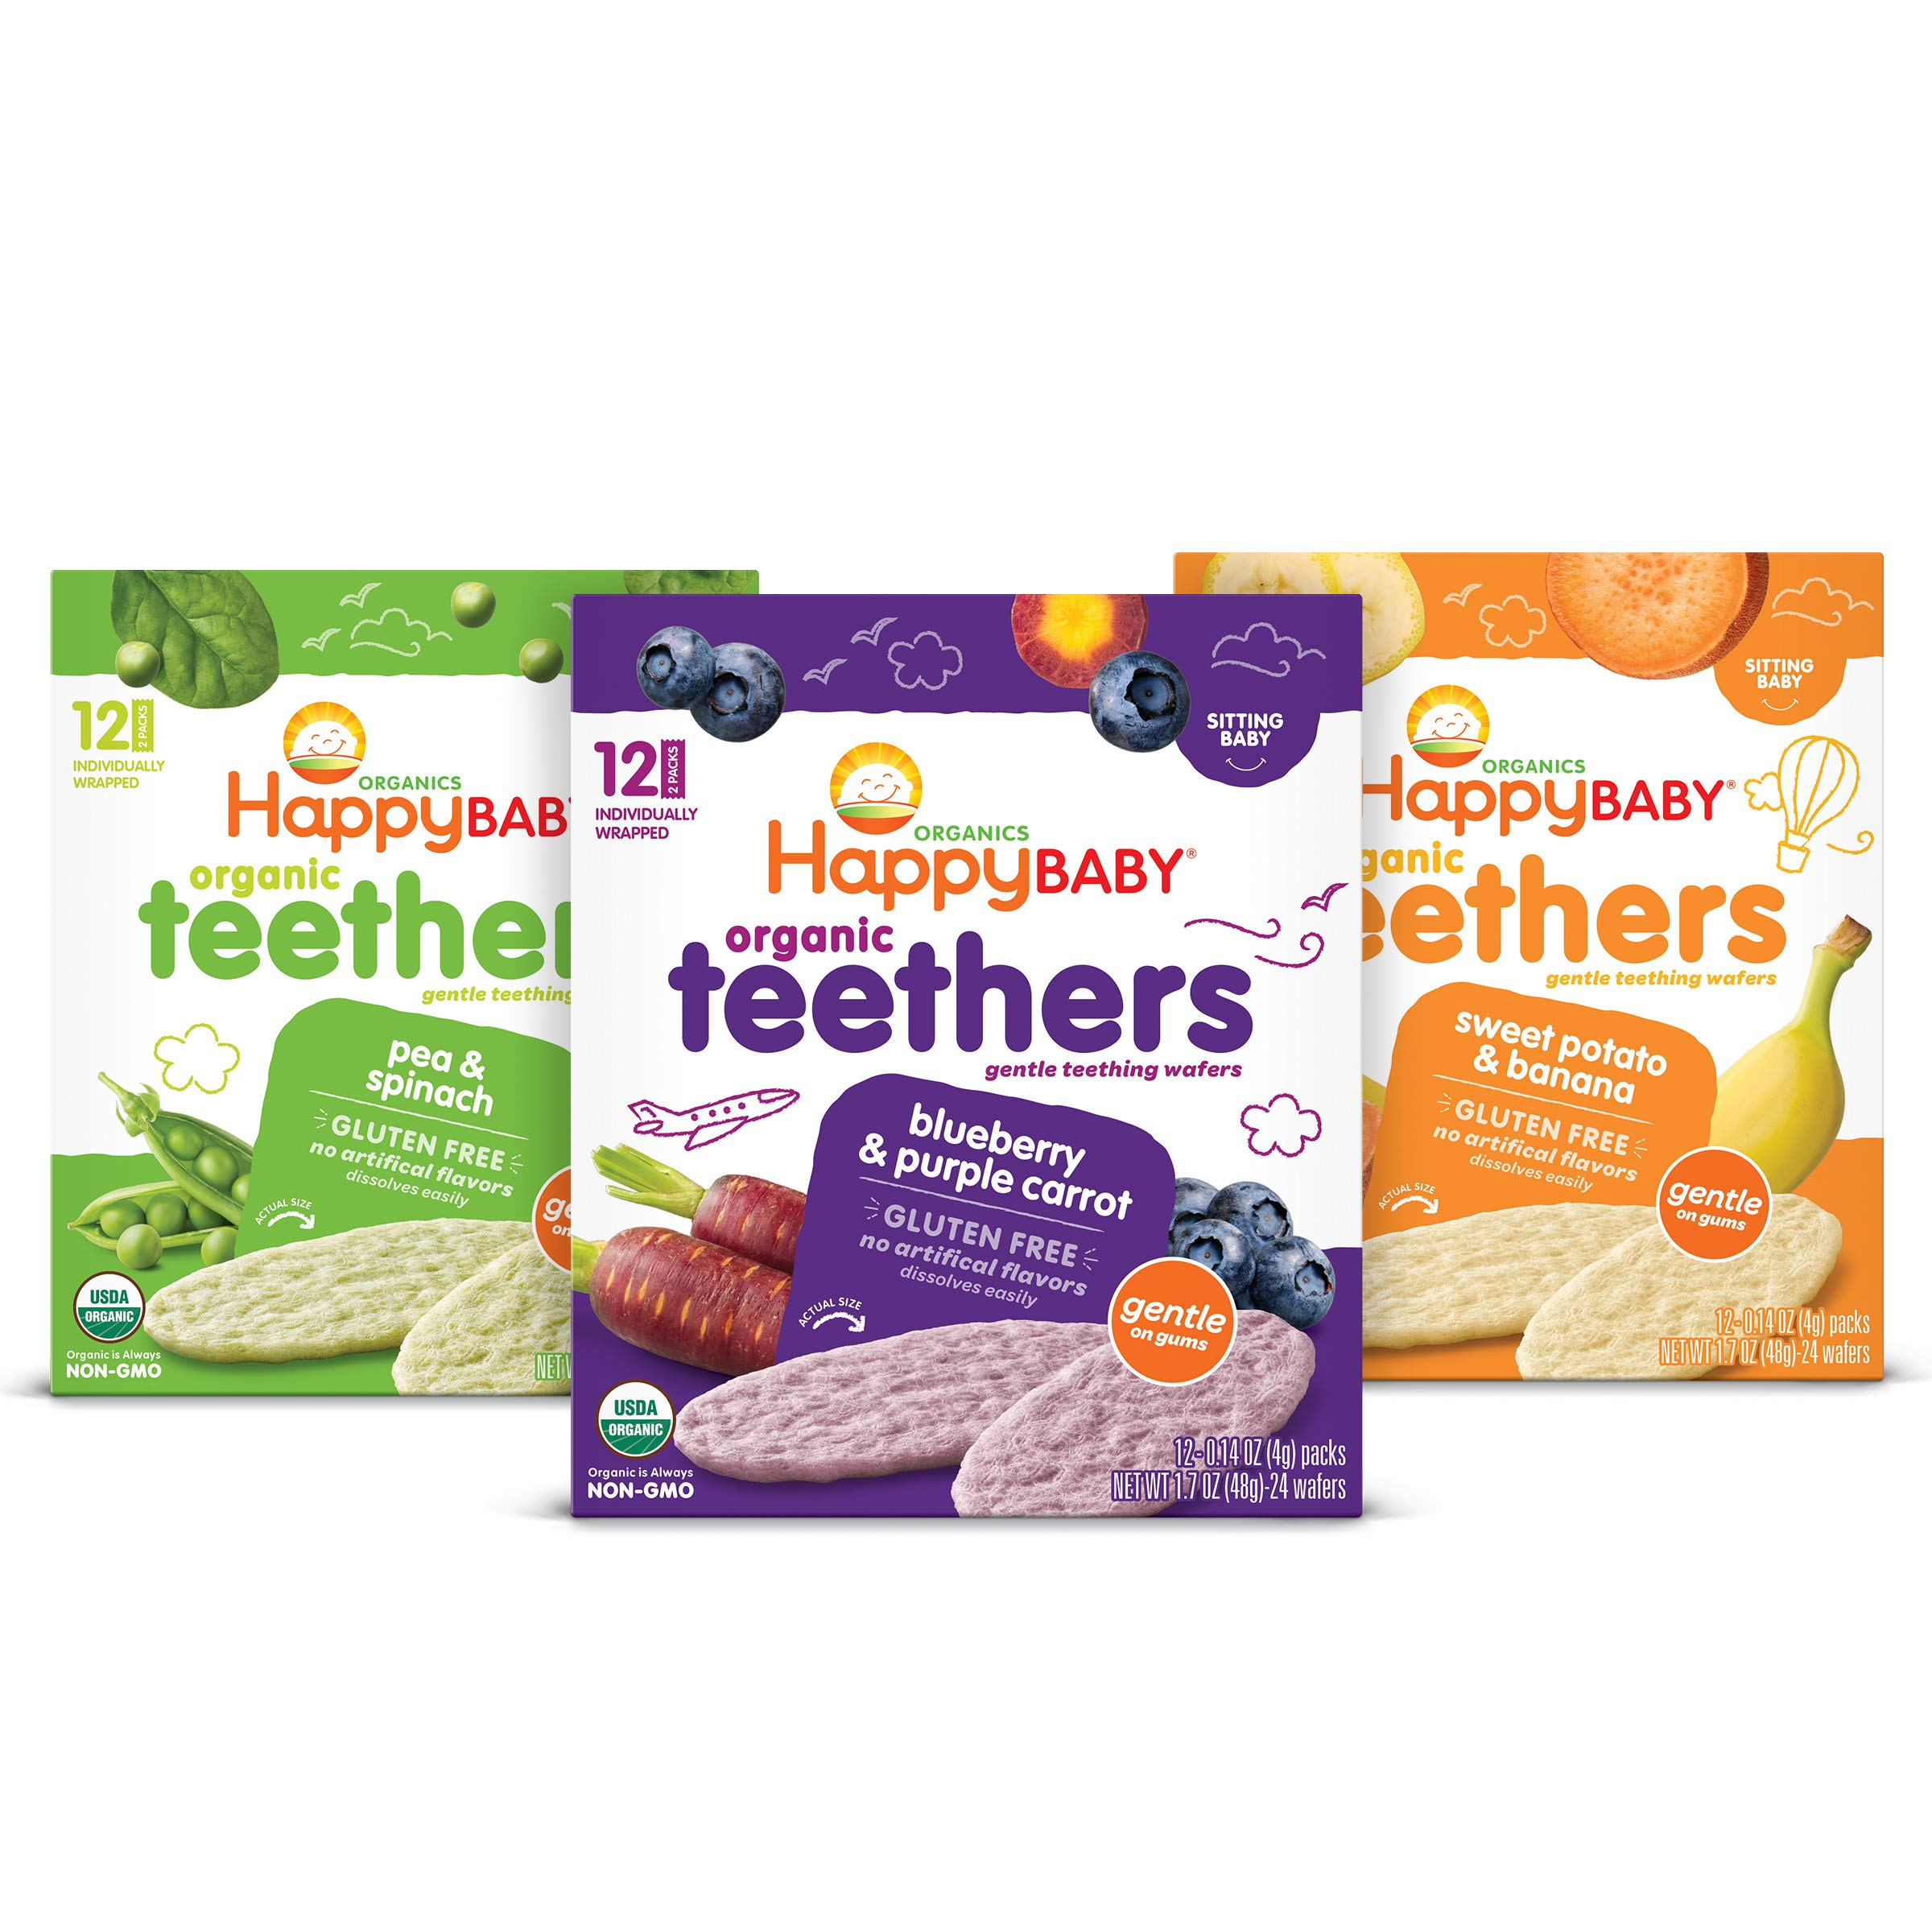 Happy Baby Organics Gluten Free Organic Teethers 3 Flavor Variety Pack